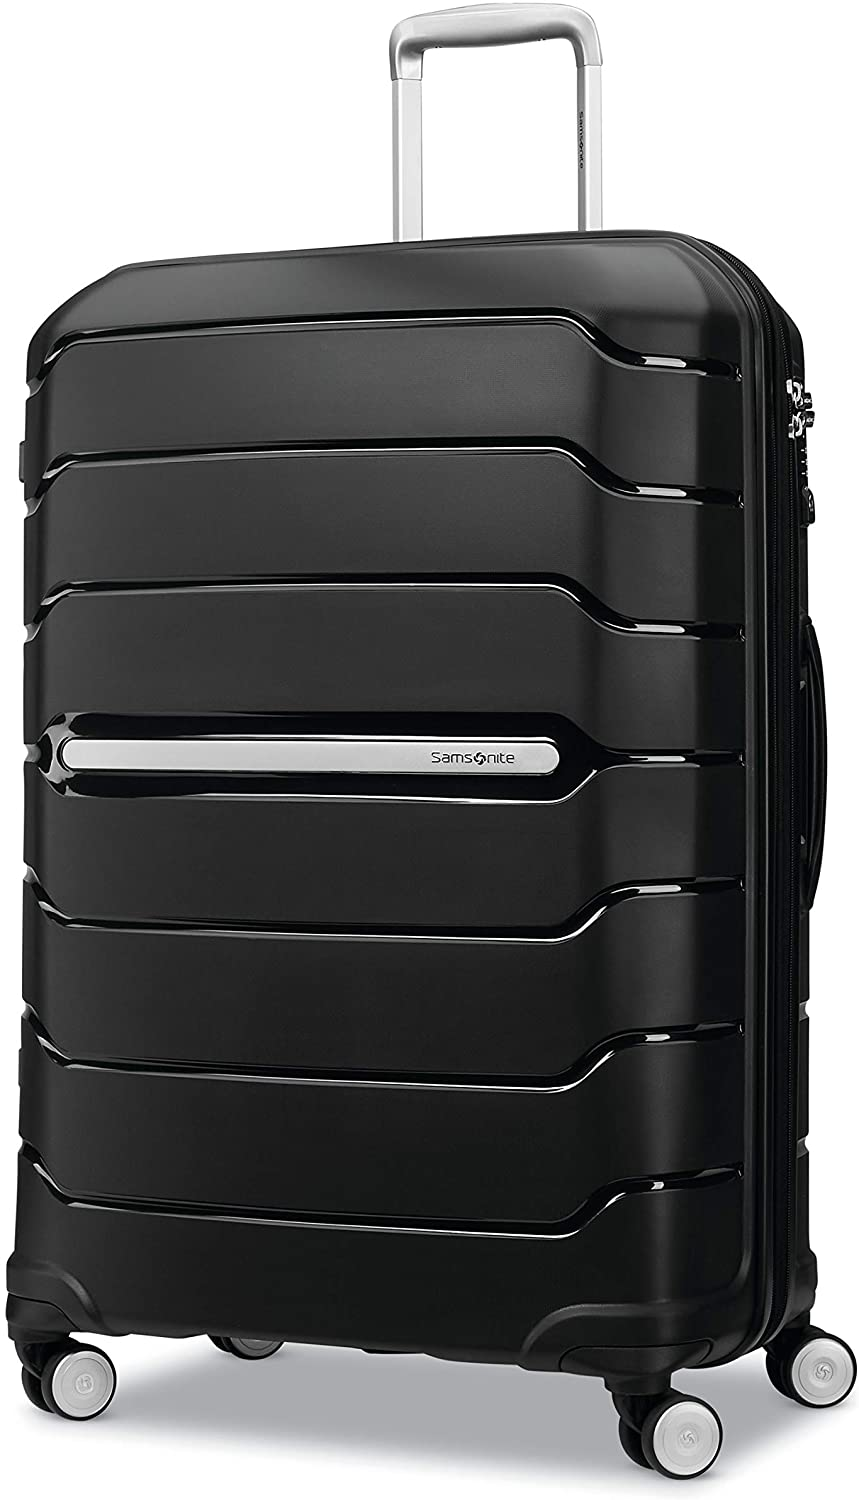 Navy Samsonite Freeform Hardside Expandable with Double Spinner Wheels